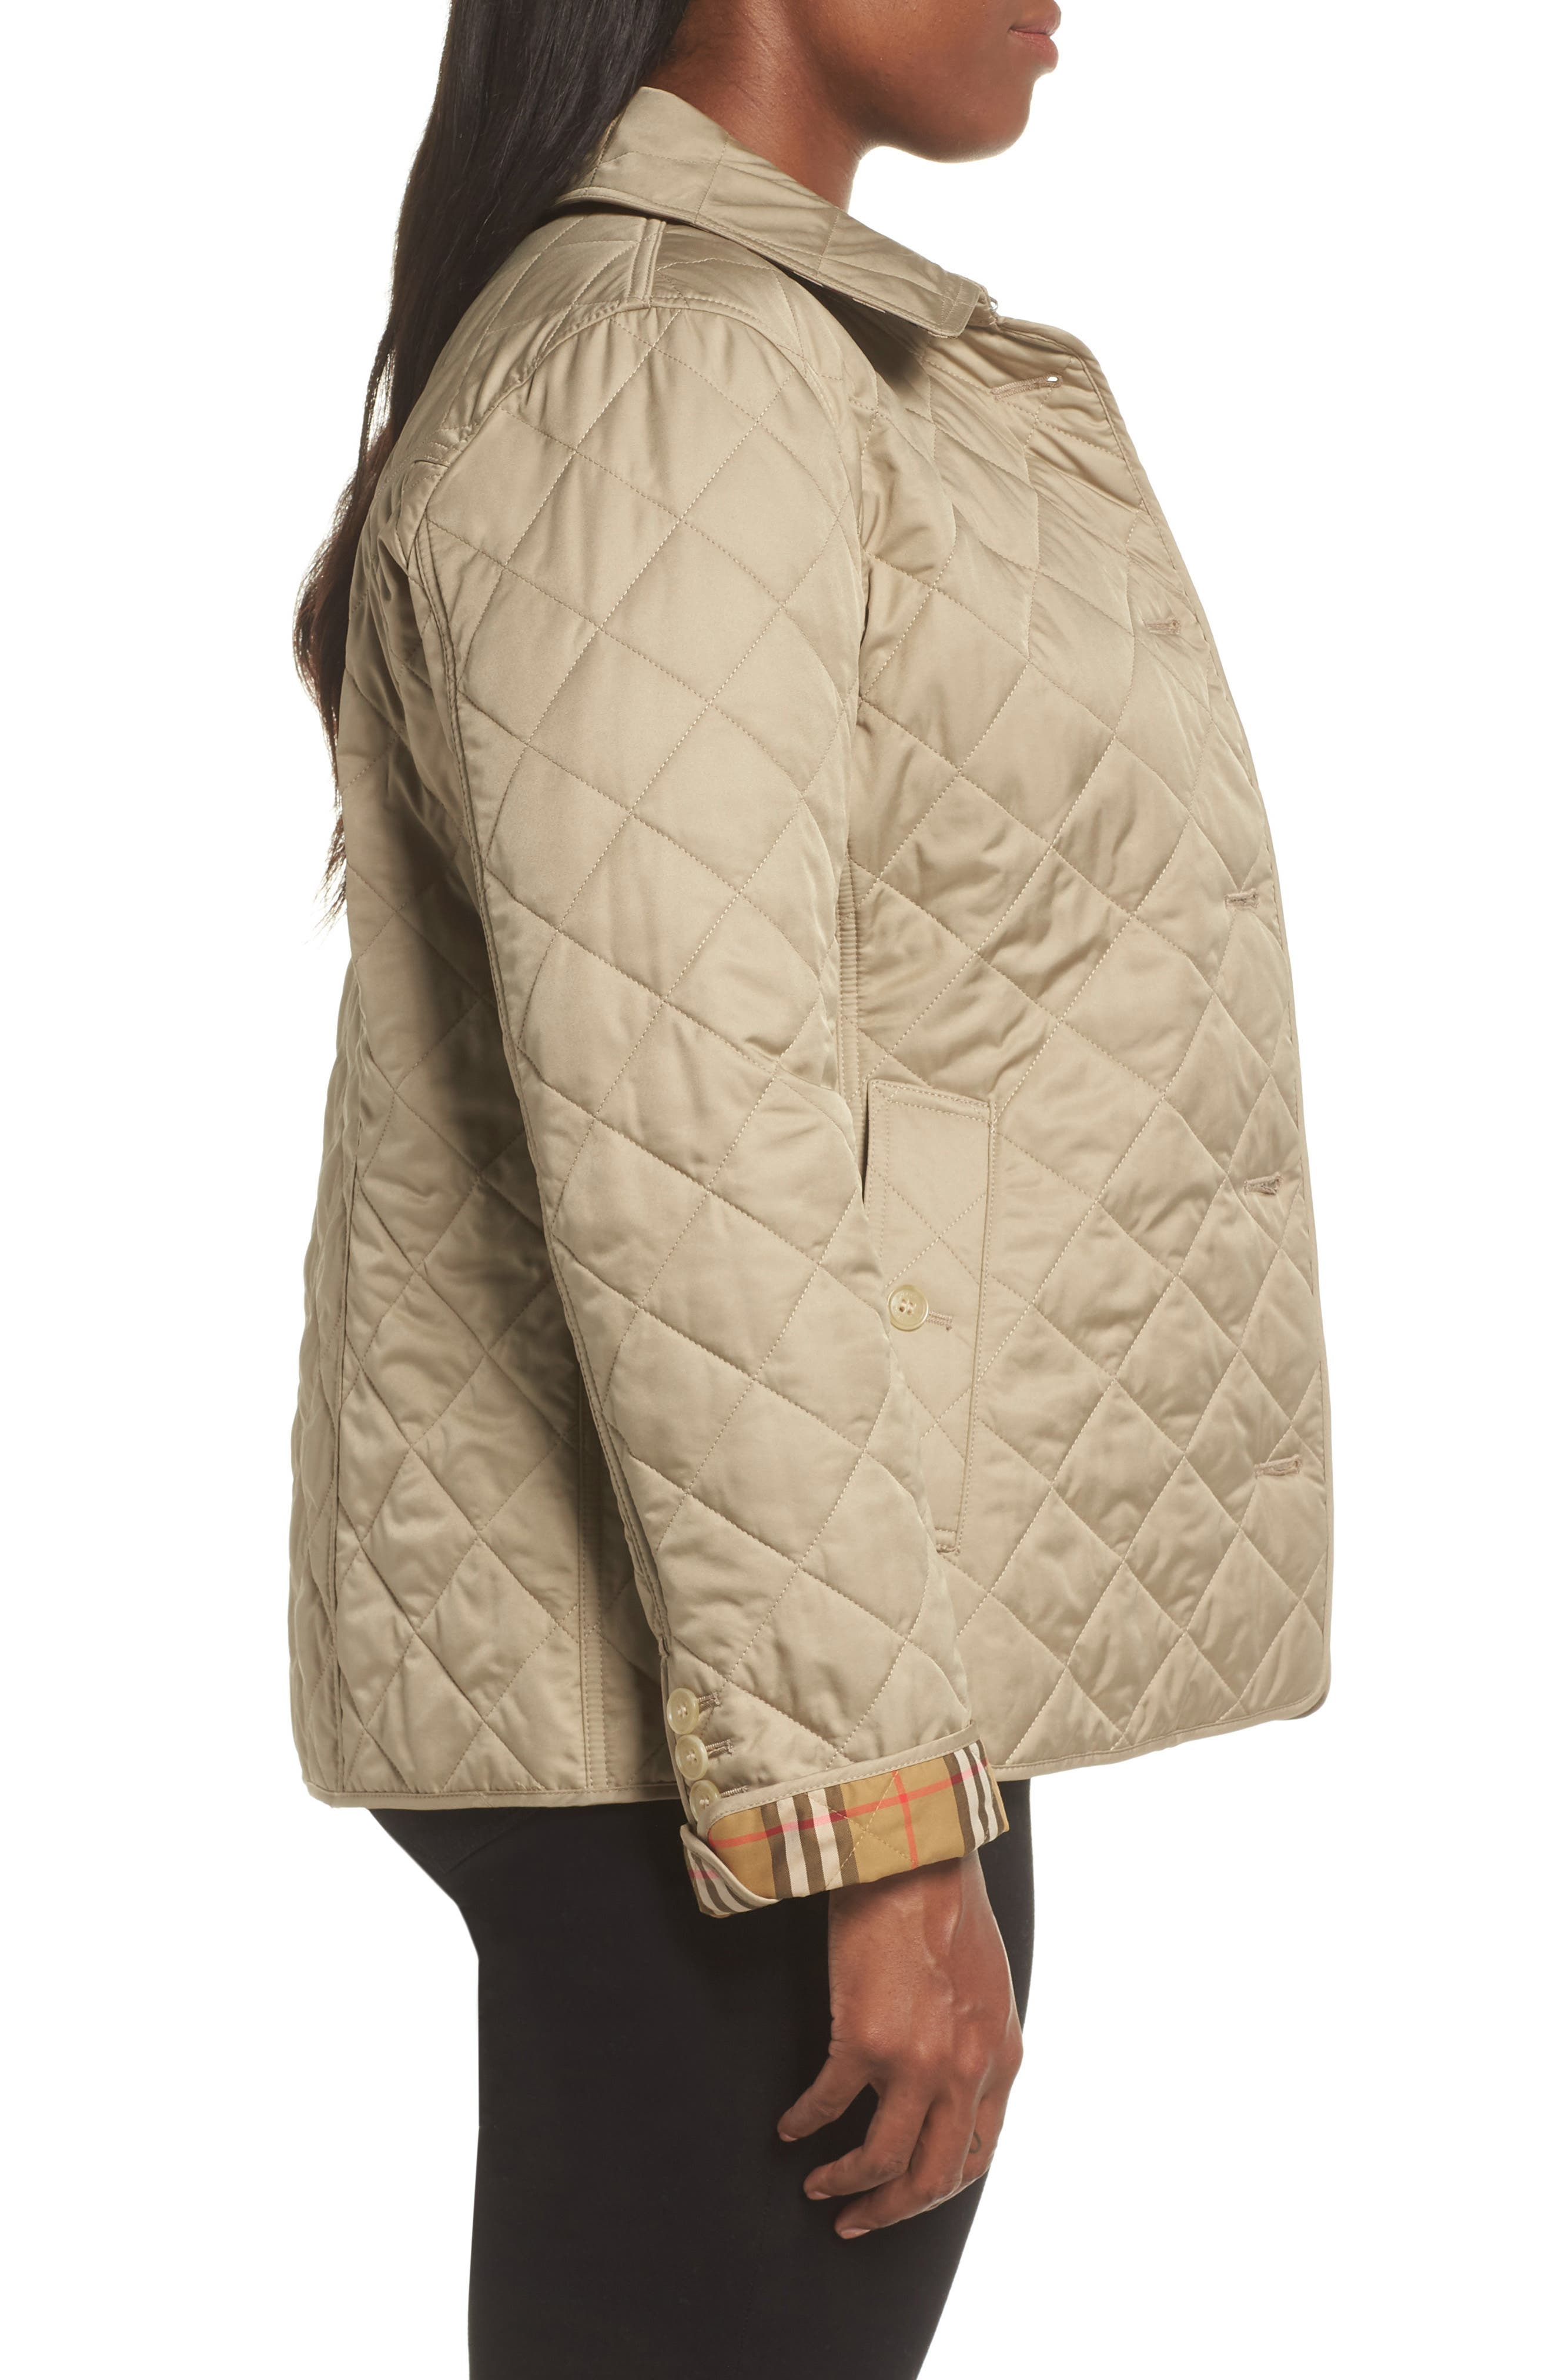 Frankby 18 Quilted Jacket,                             Alternate thumbnail 8, color,                             CANVAS